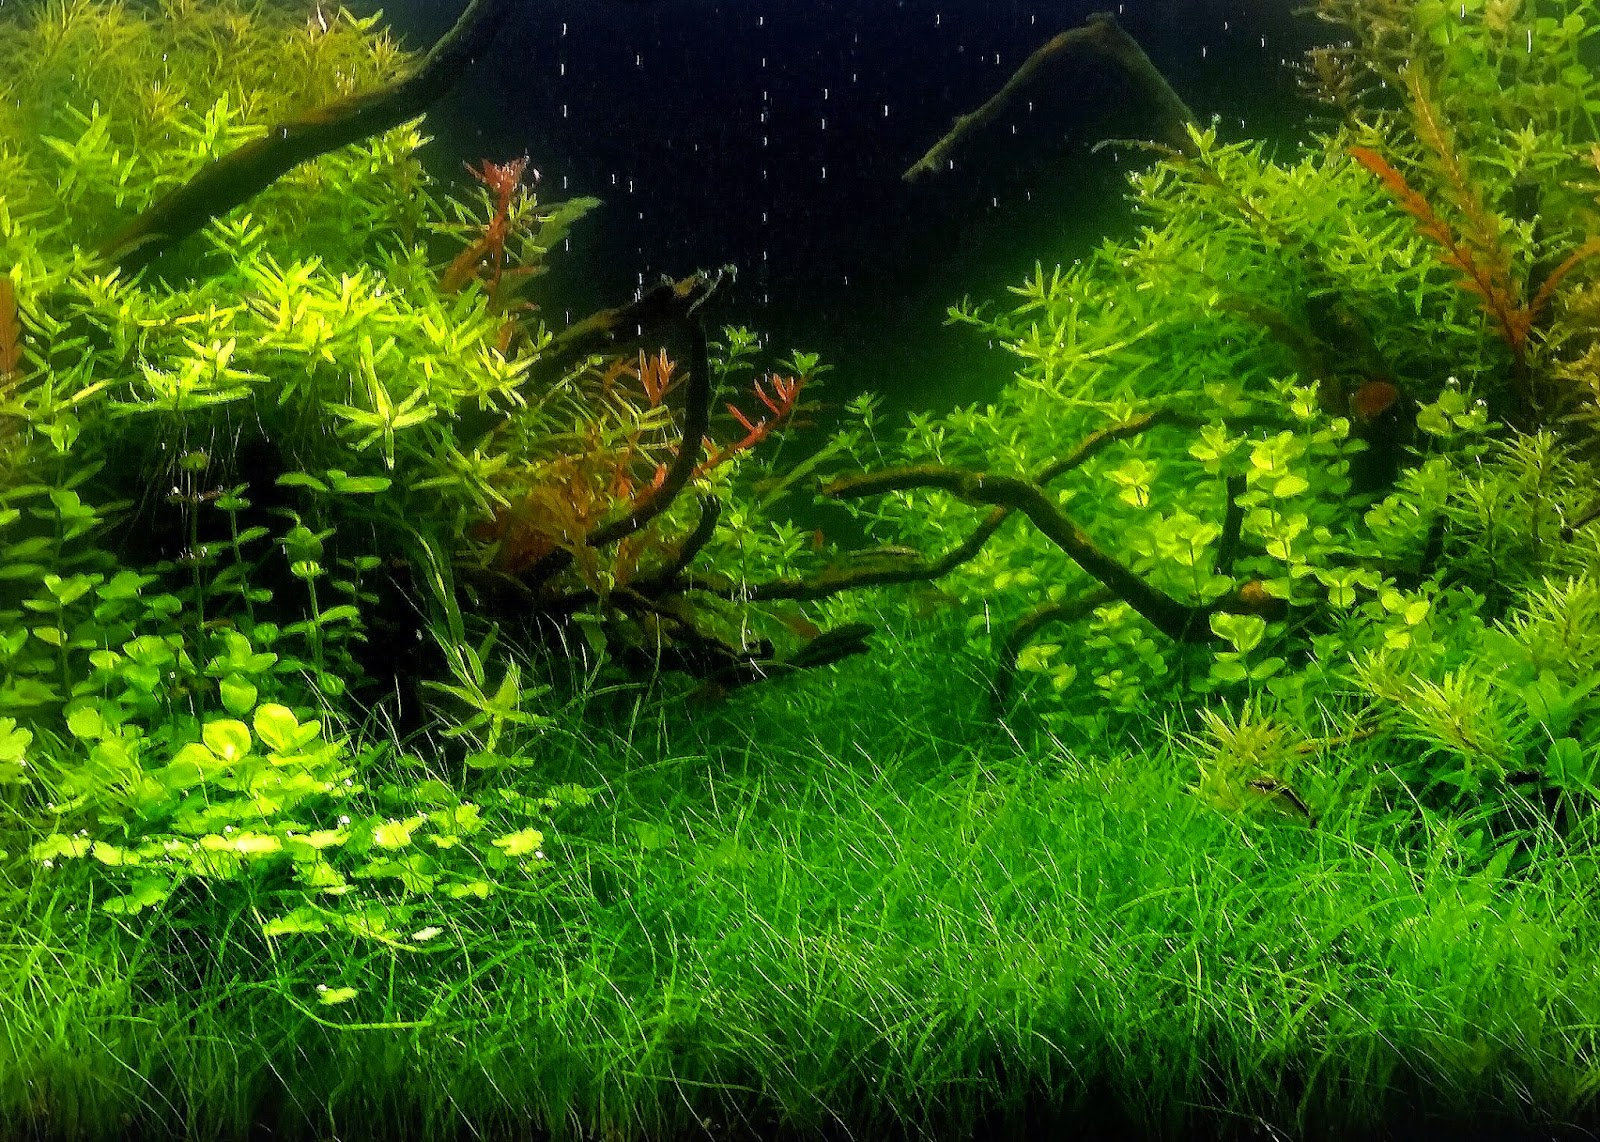 Aquascaping spain night forest by pablo fernandez - Aquascape espana ...